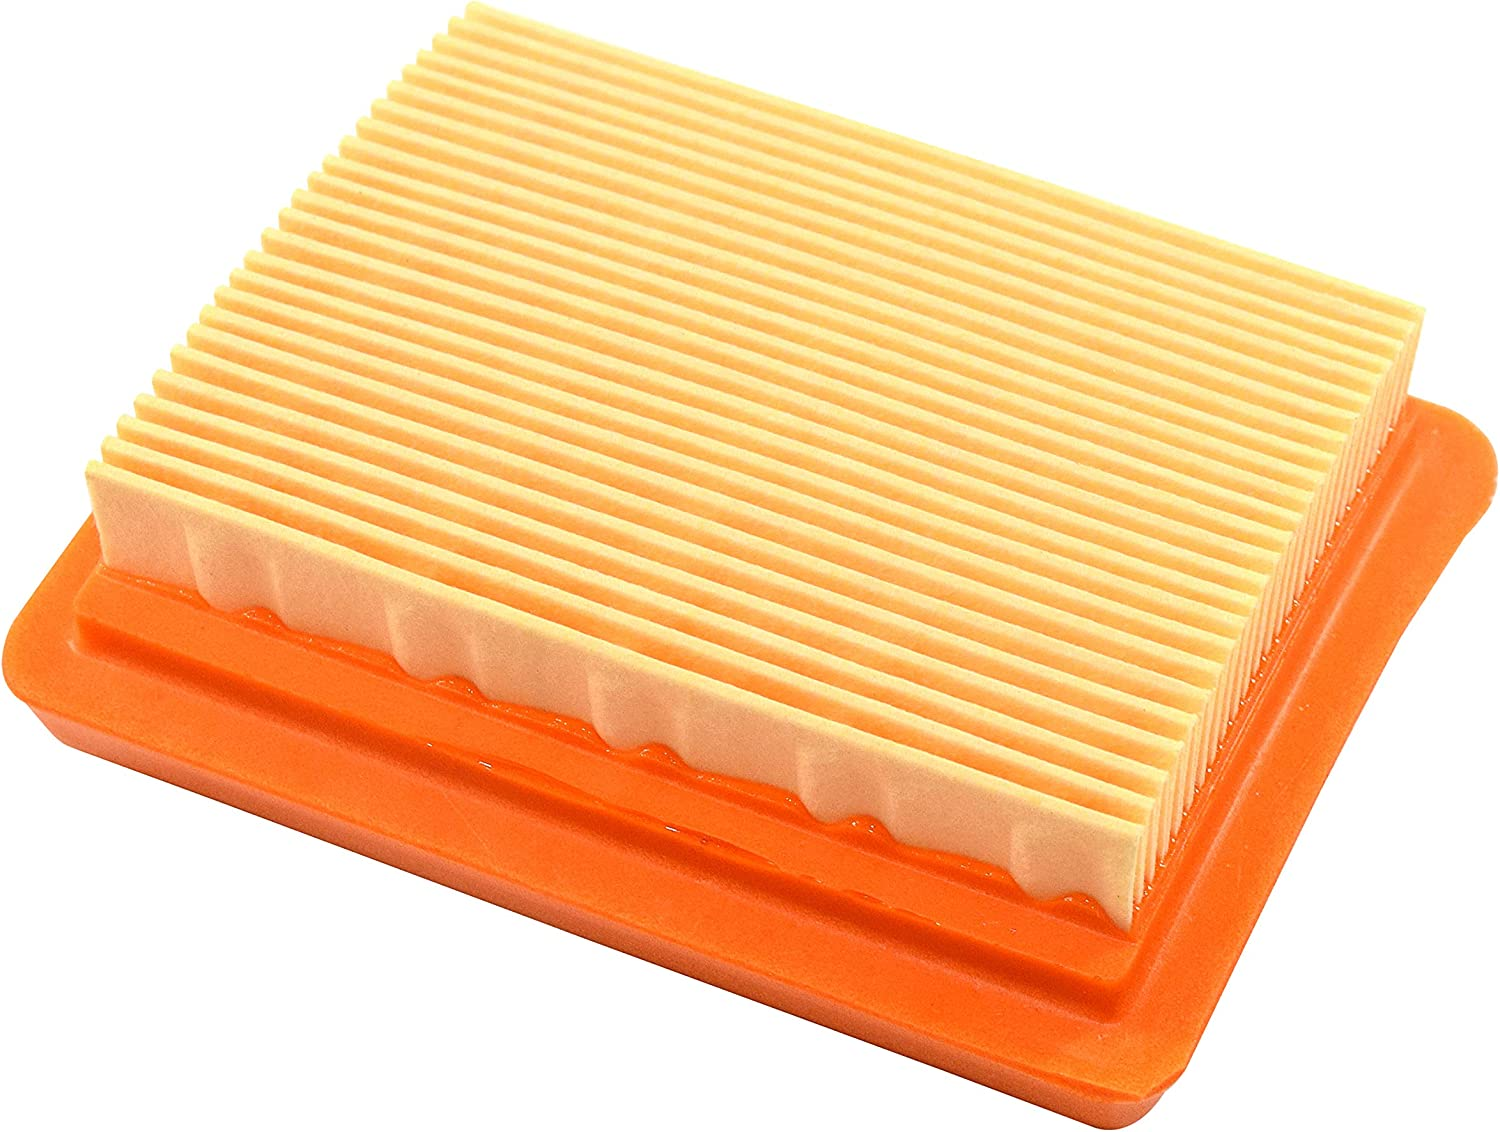 4-Pack Air Filter fits Stihl Trimmer Brush Cutters 4134-141-0300 Replacement